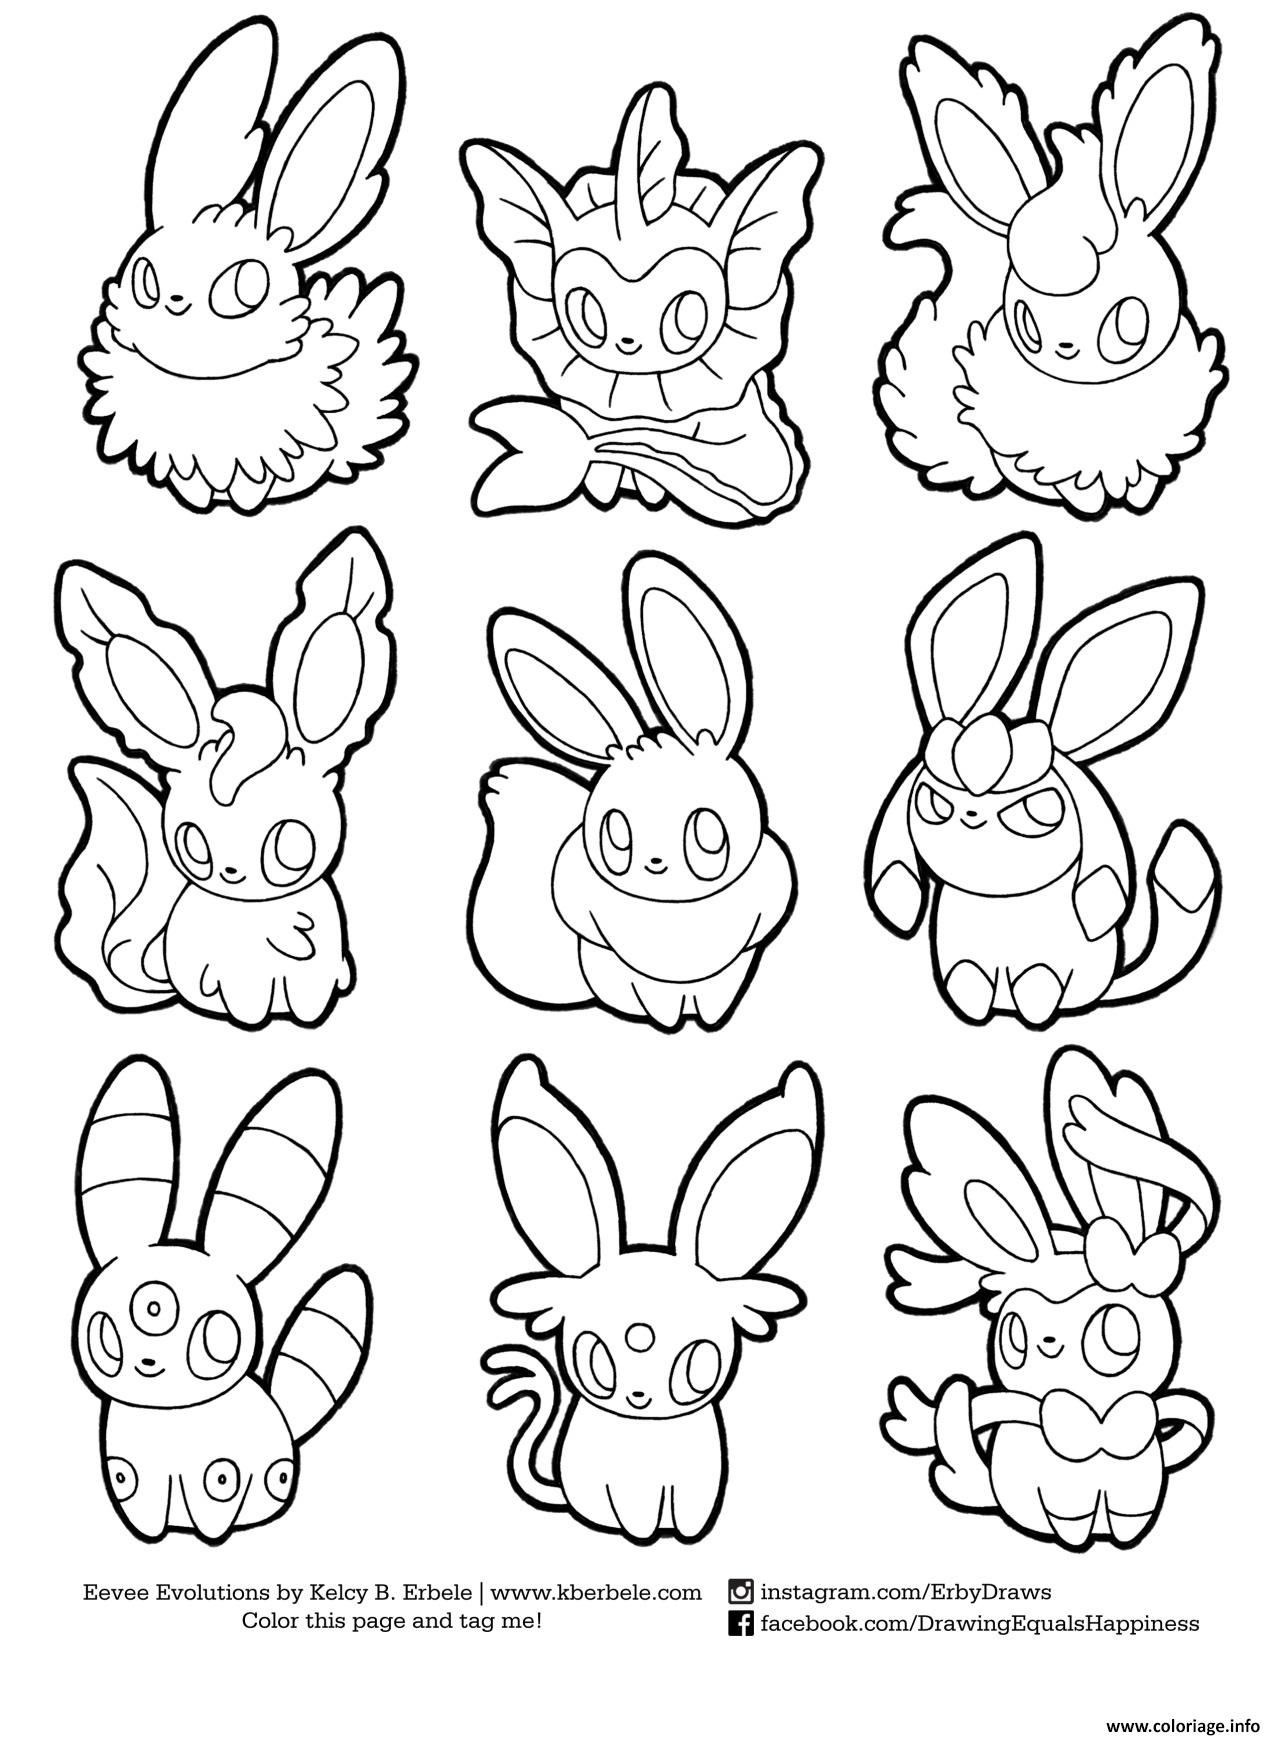 Pokemon Eevee Evolutions Coloring Pages  Collection 6g - Save it to your computer